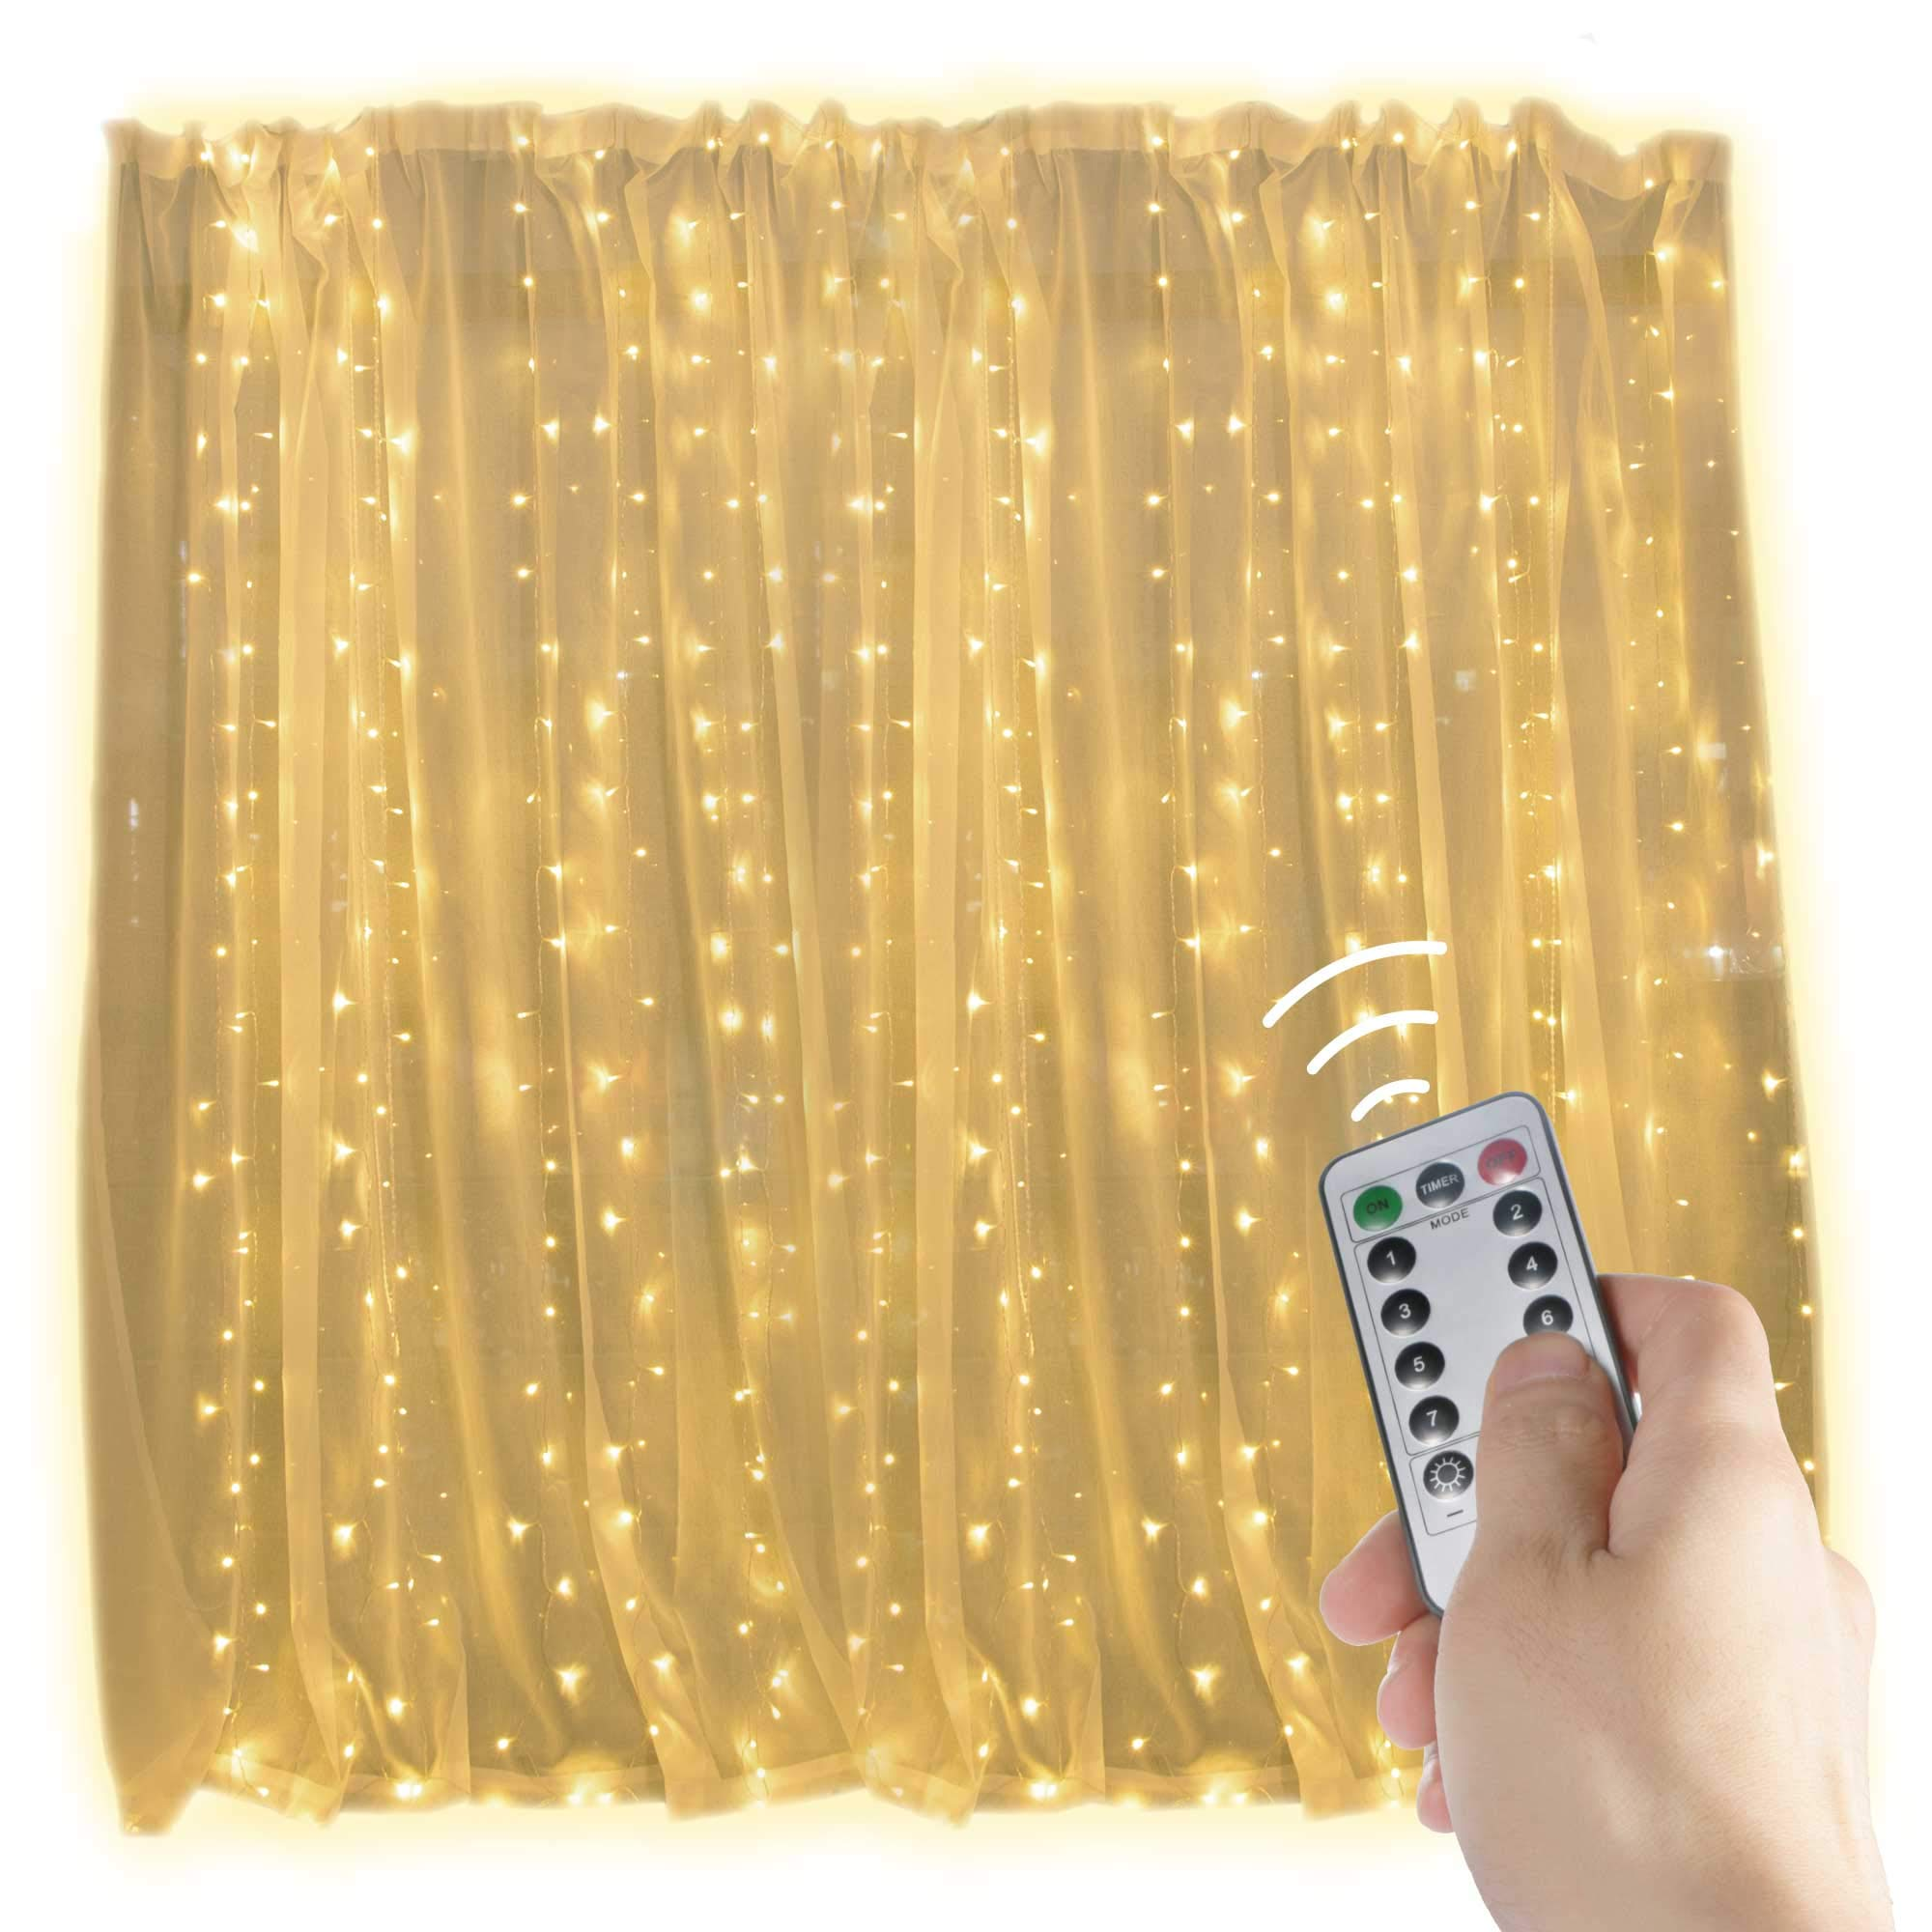 Window Curtain String Lights,300 LED Icicle Fairy Twinkle Starry ...